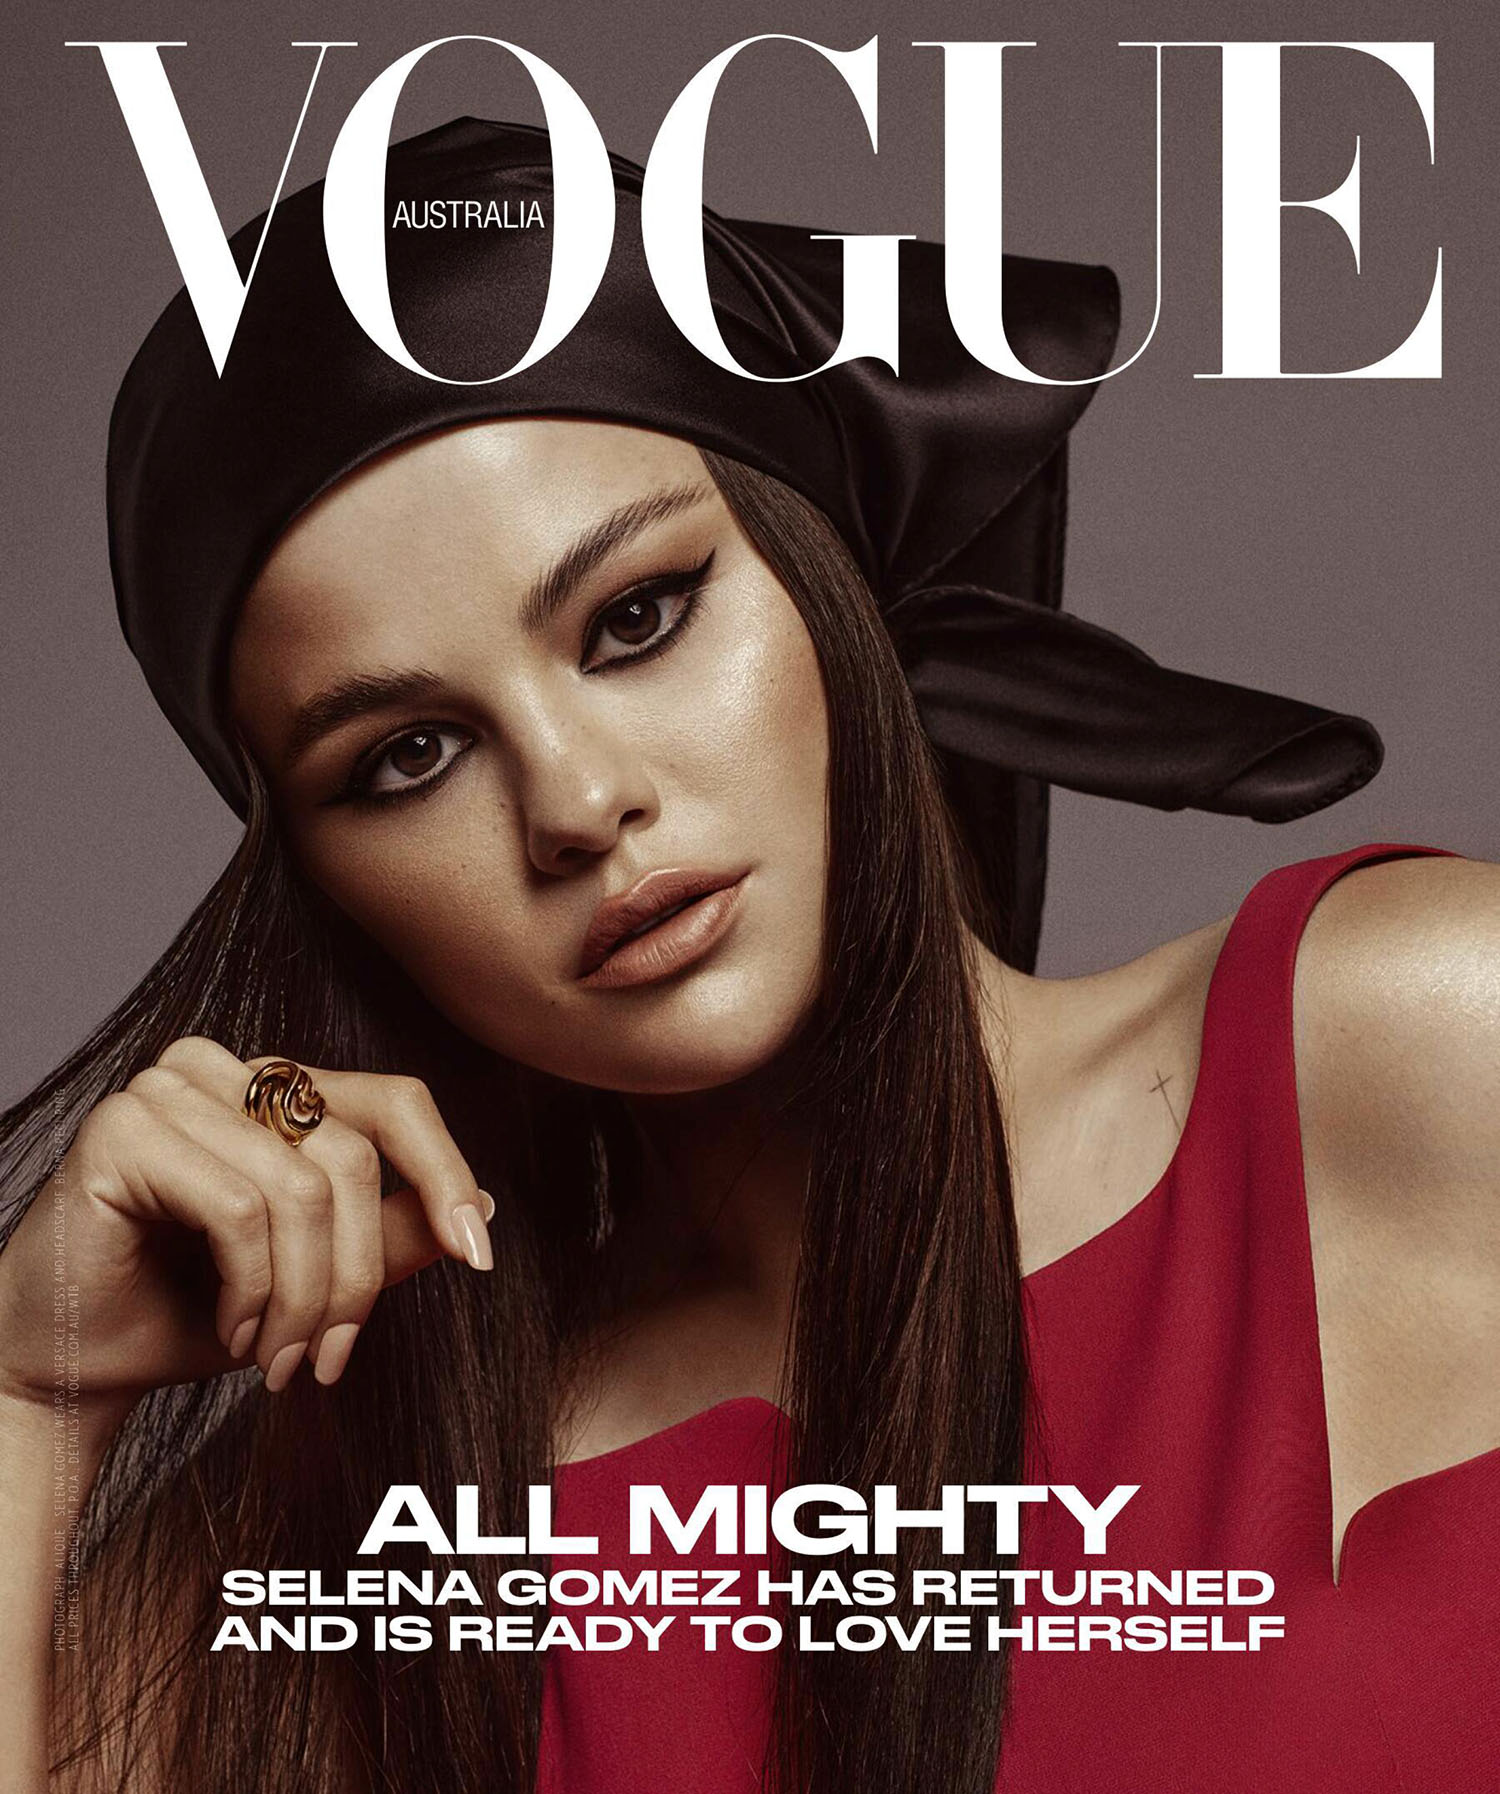 Selena Gomez covers Vogue Australia July 2021 and Vogue Singapore July August 2021 by Alique